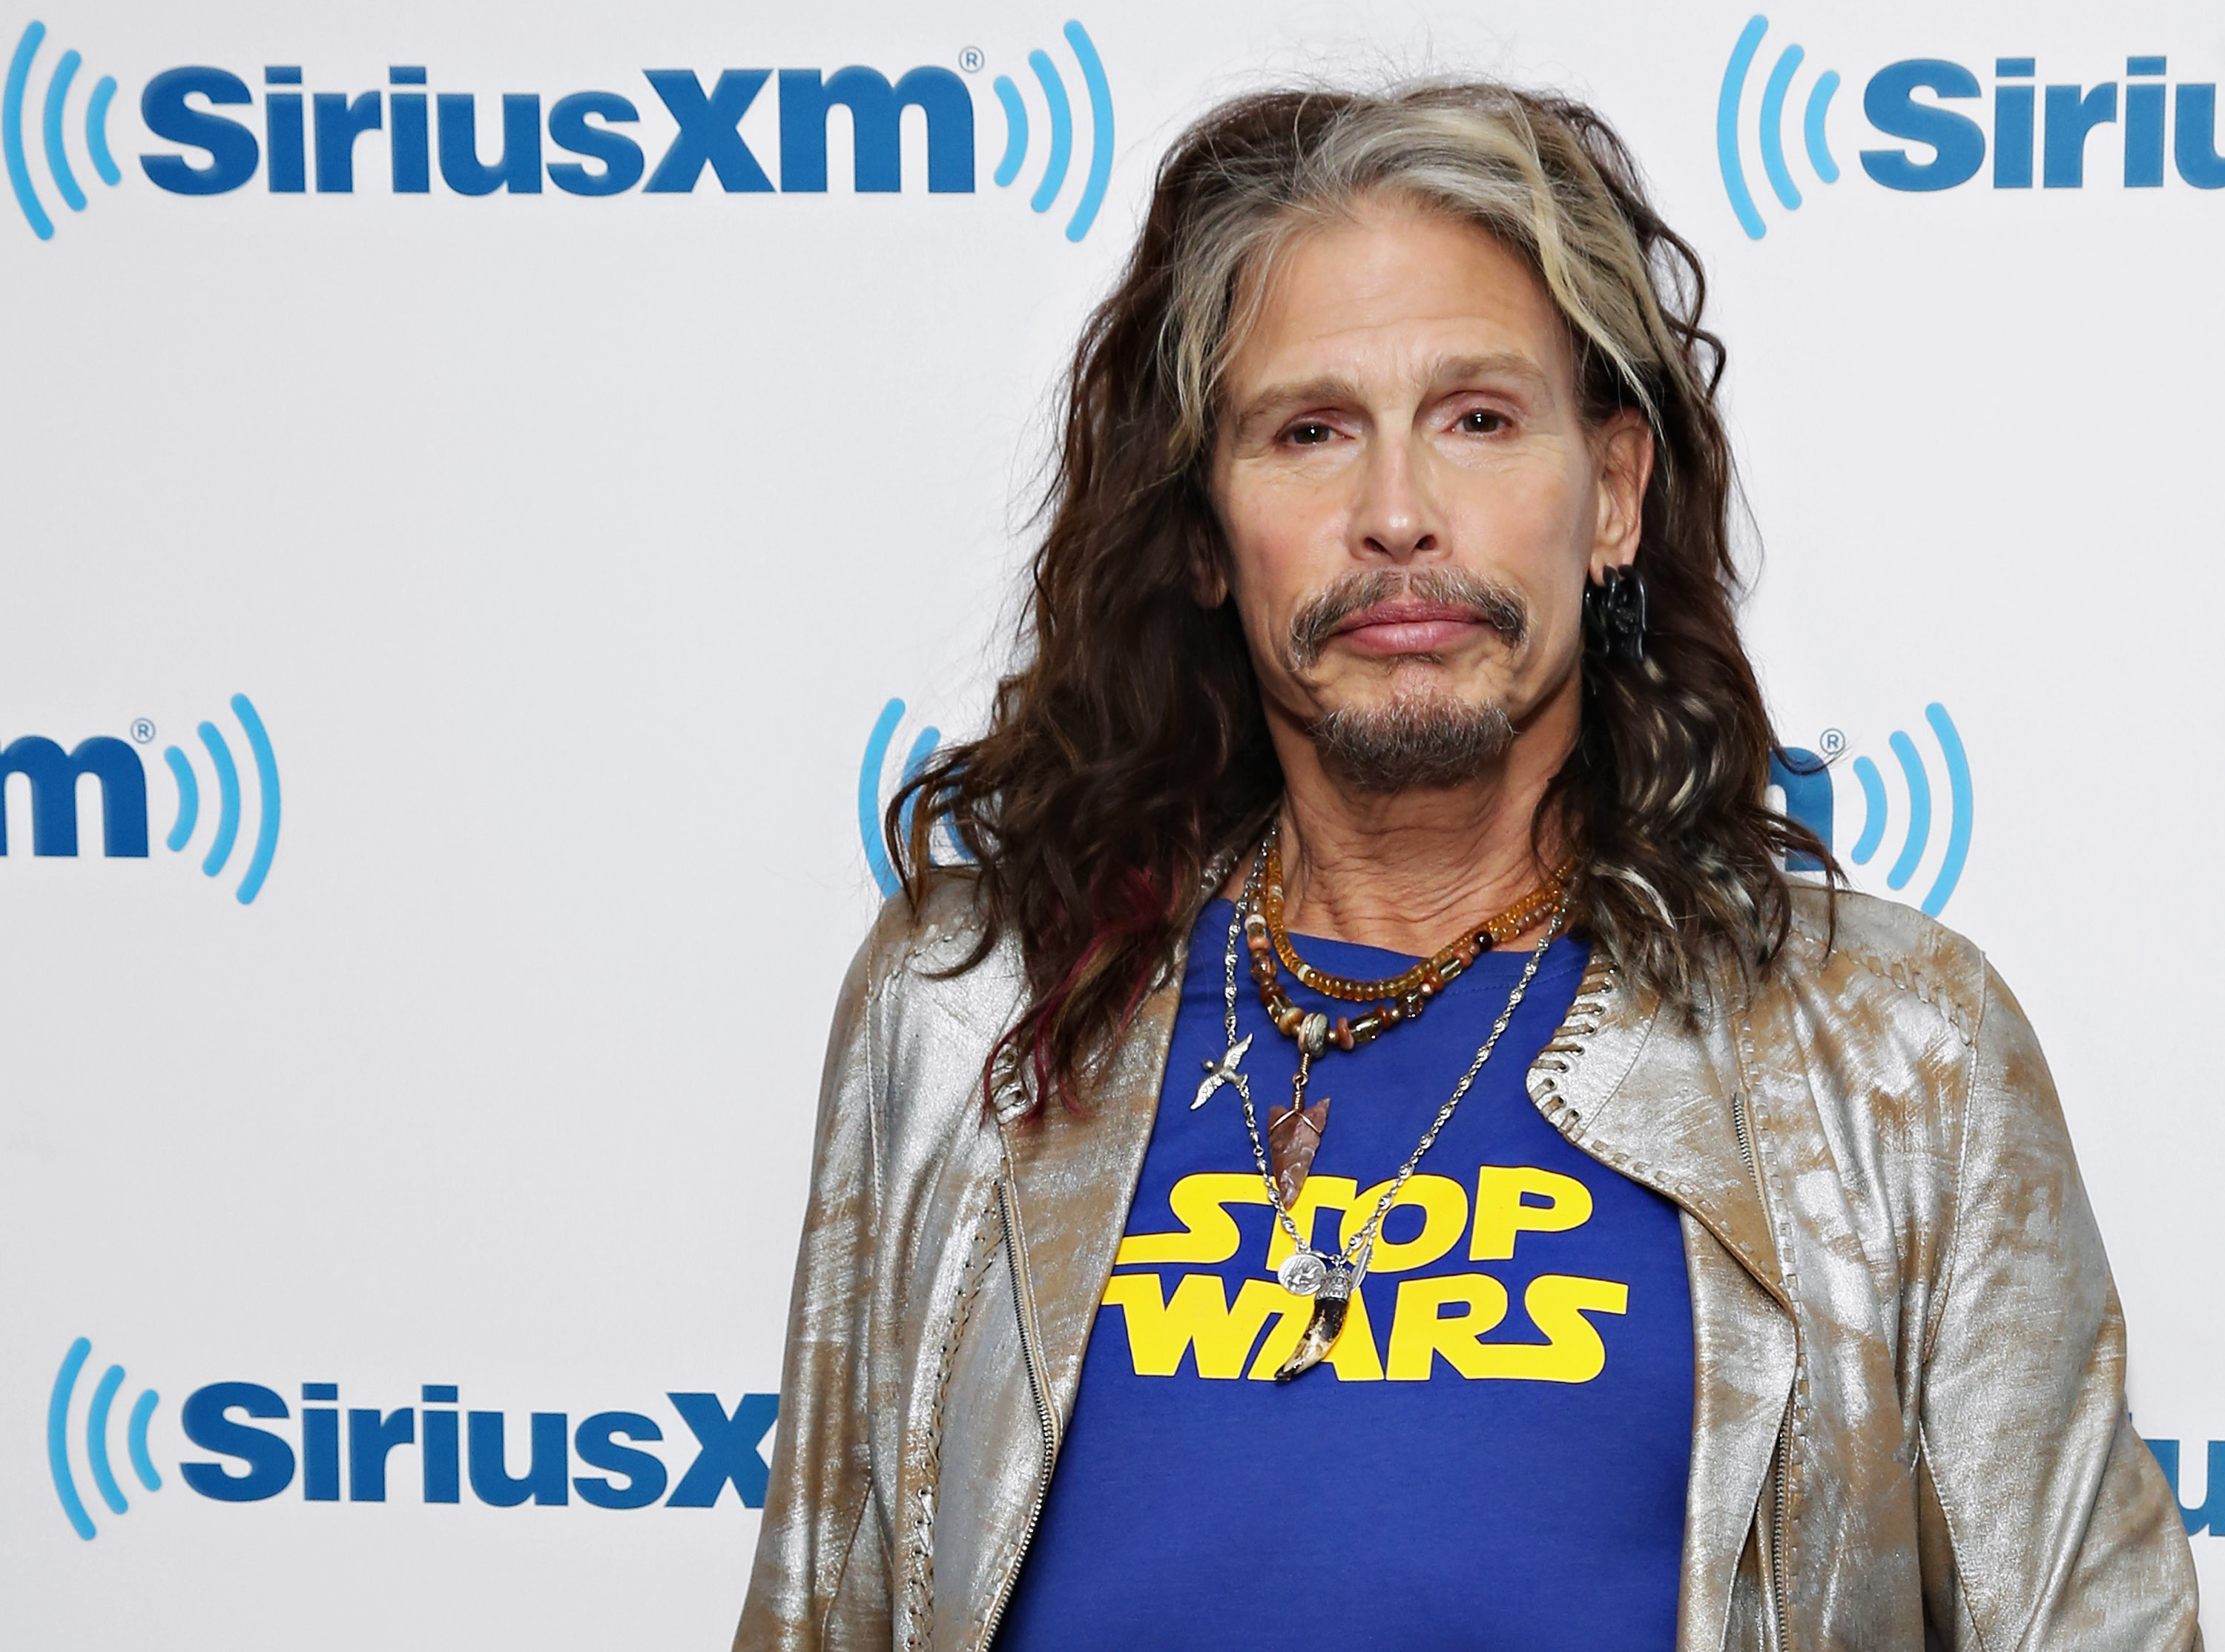 NEW YORK, NY - JANUARY 25:  Singer Steven Tyler visits the SiriusXM Studios on January 25, 2016 in New York City.  (Photo by